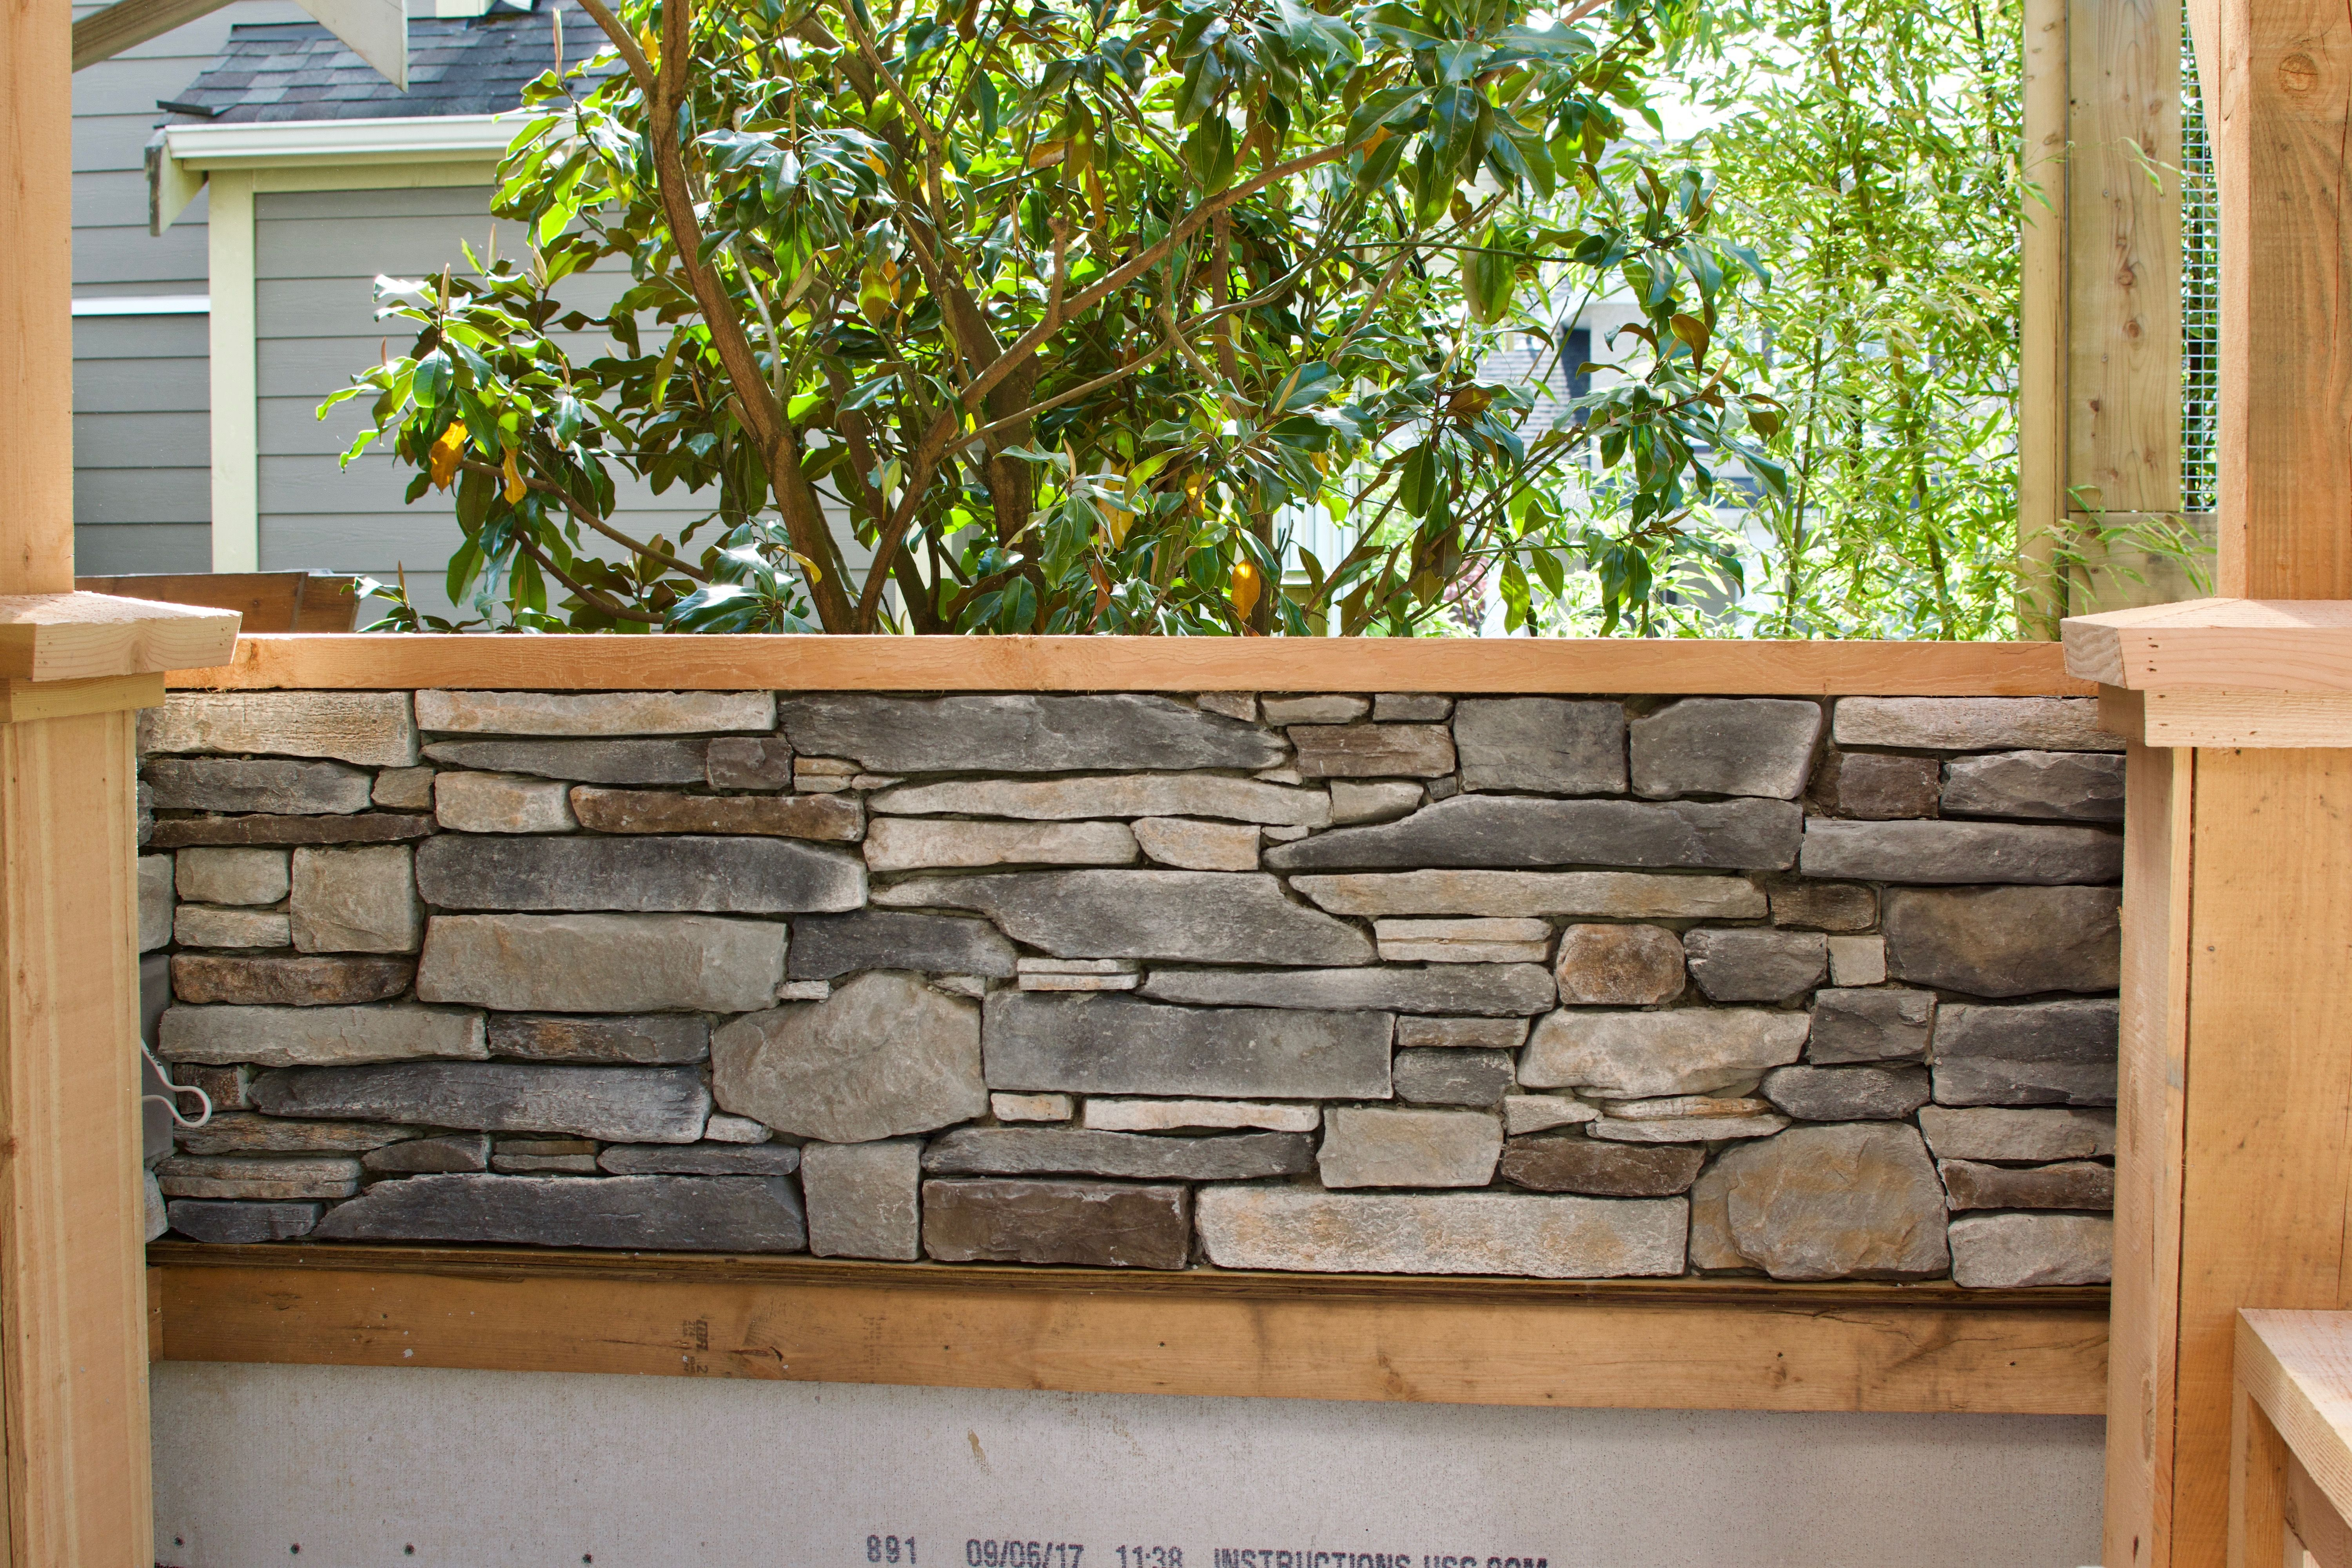 Outdoor Stone Fireplace And Patio Walls By Lennox Masonry Of Victoria B C Canada This Dry Stack Ledge Outdoor Stone Fireplaces Masonry Contractor Masonry